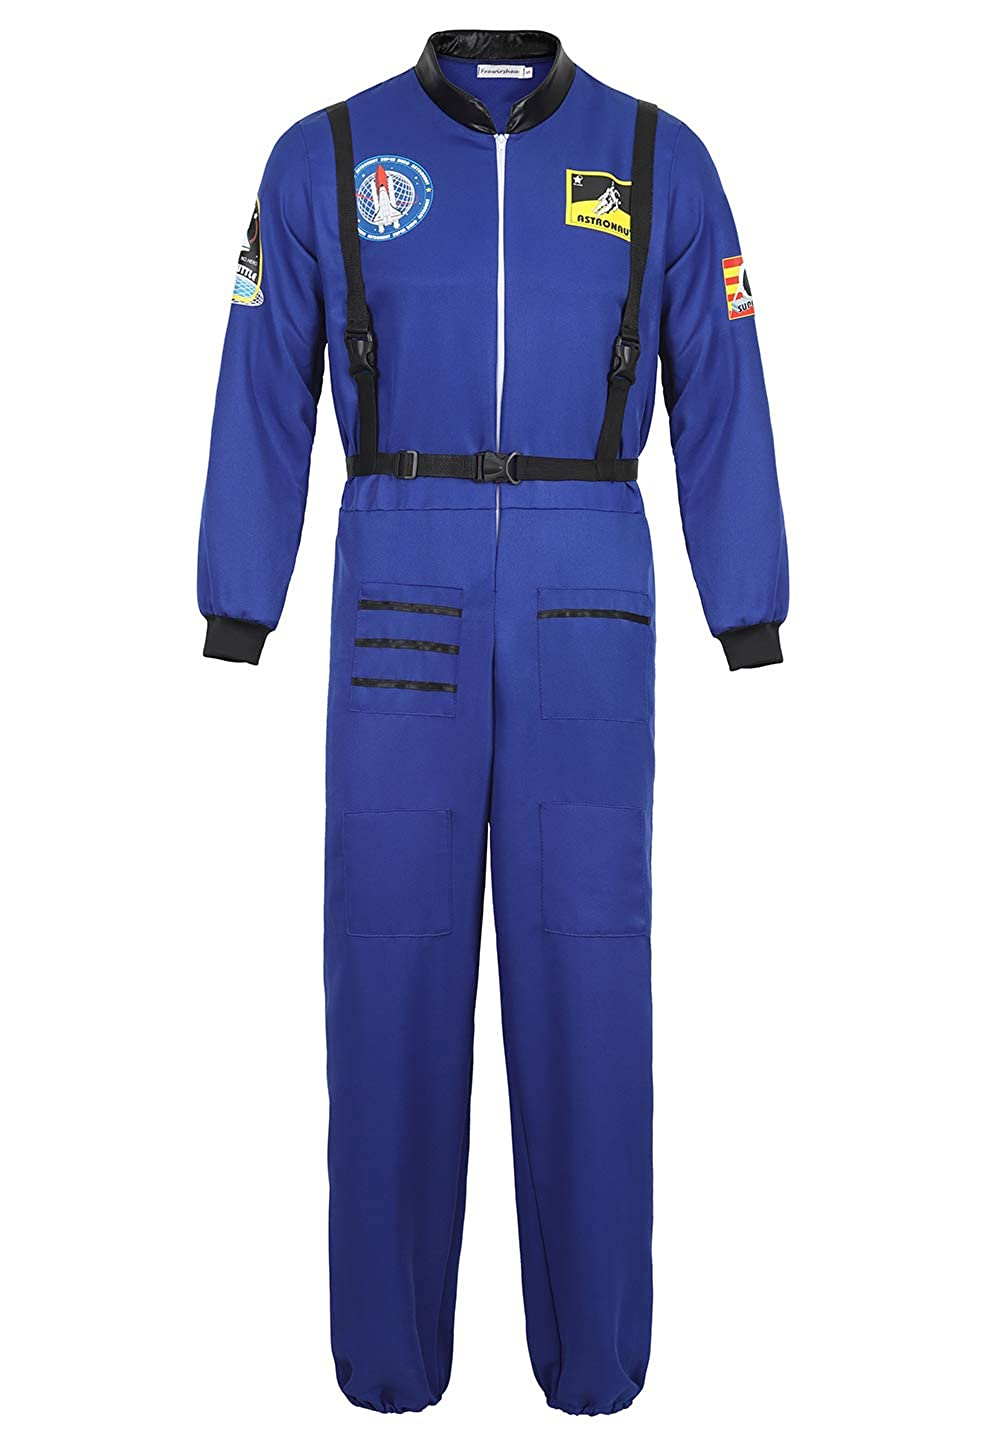 Adults Astronaut NASA Flight Suit